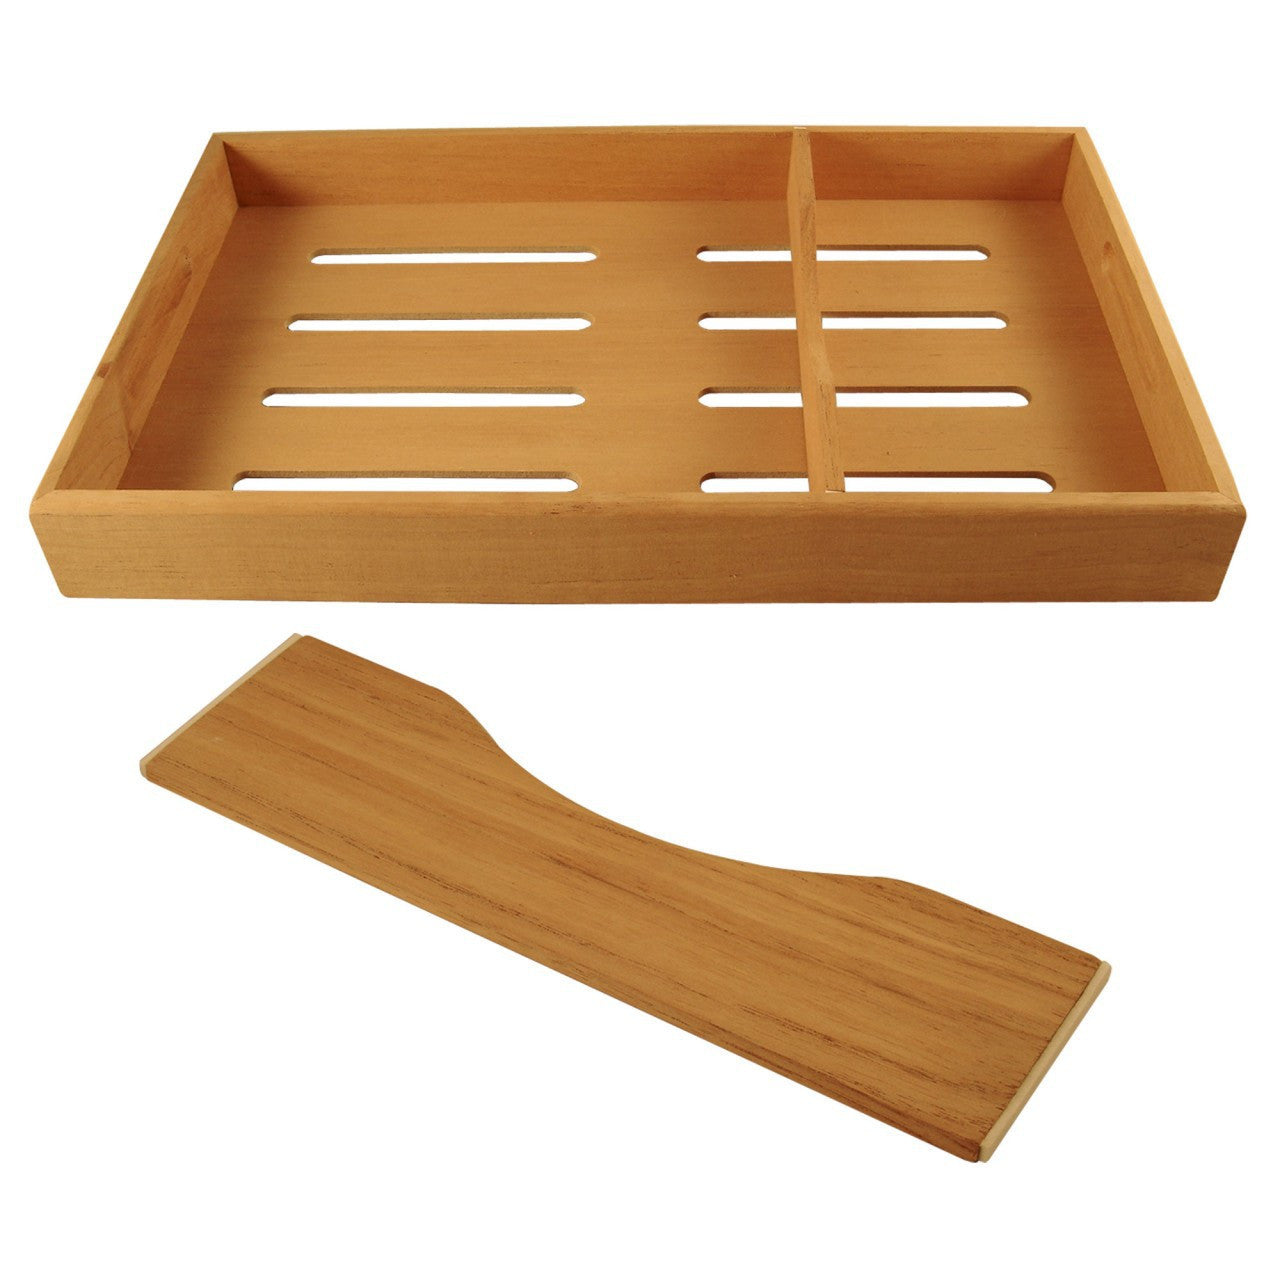 Top Tray Dividers for Cuban Crafters Exotica Humidor - Humidors Wholesaler